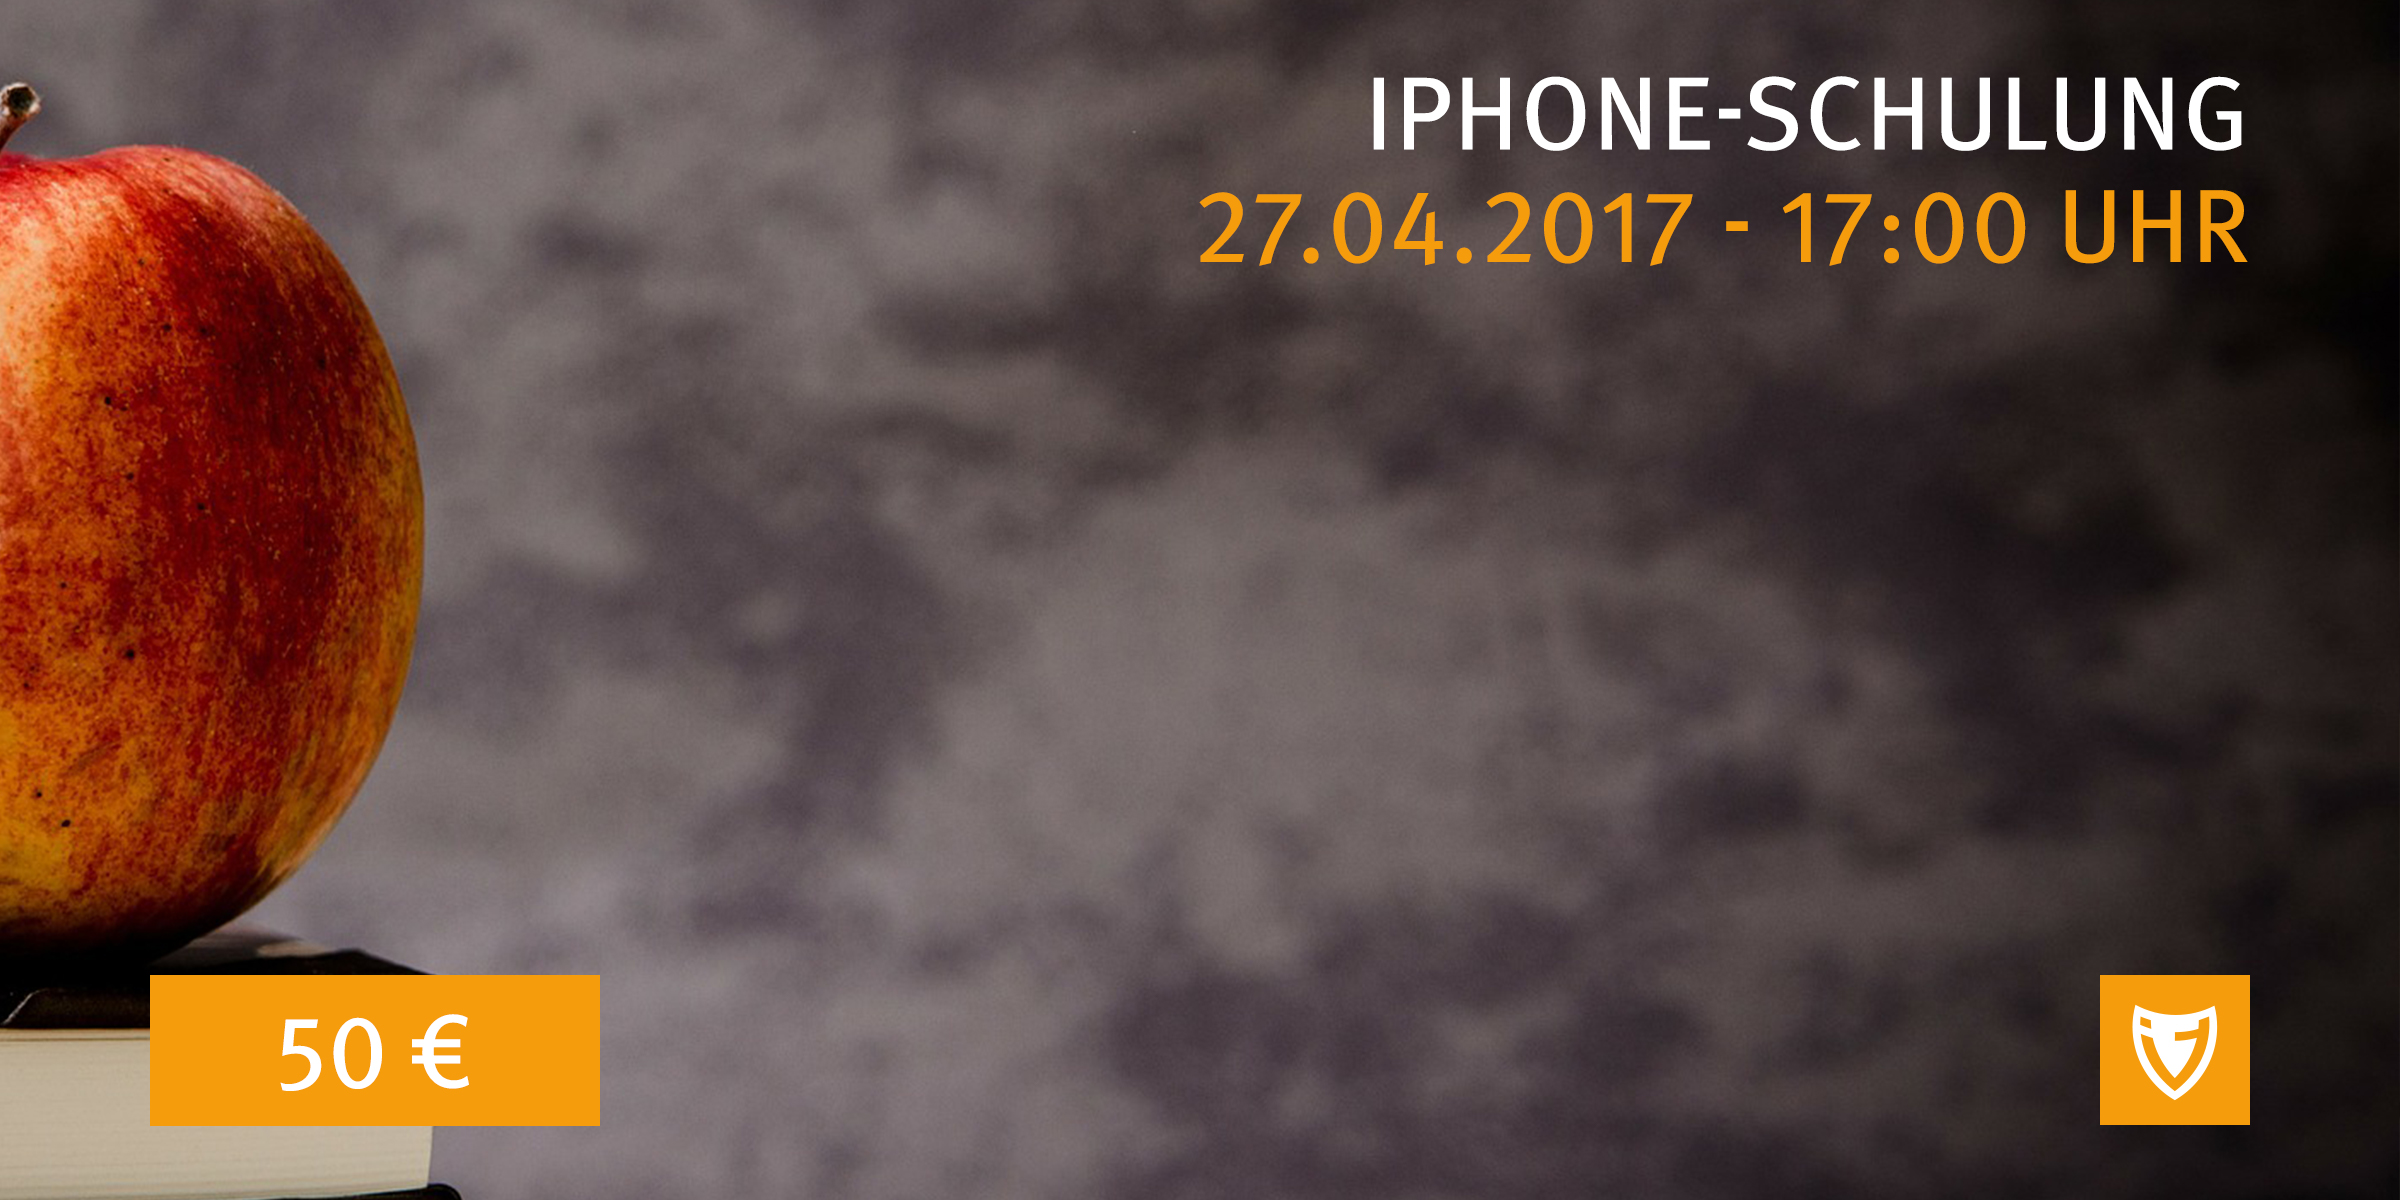 iPhone Schulung 27.04.2017